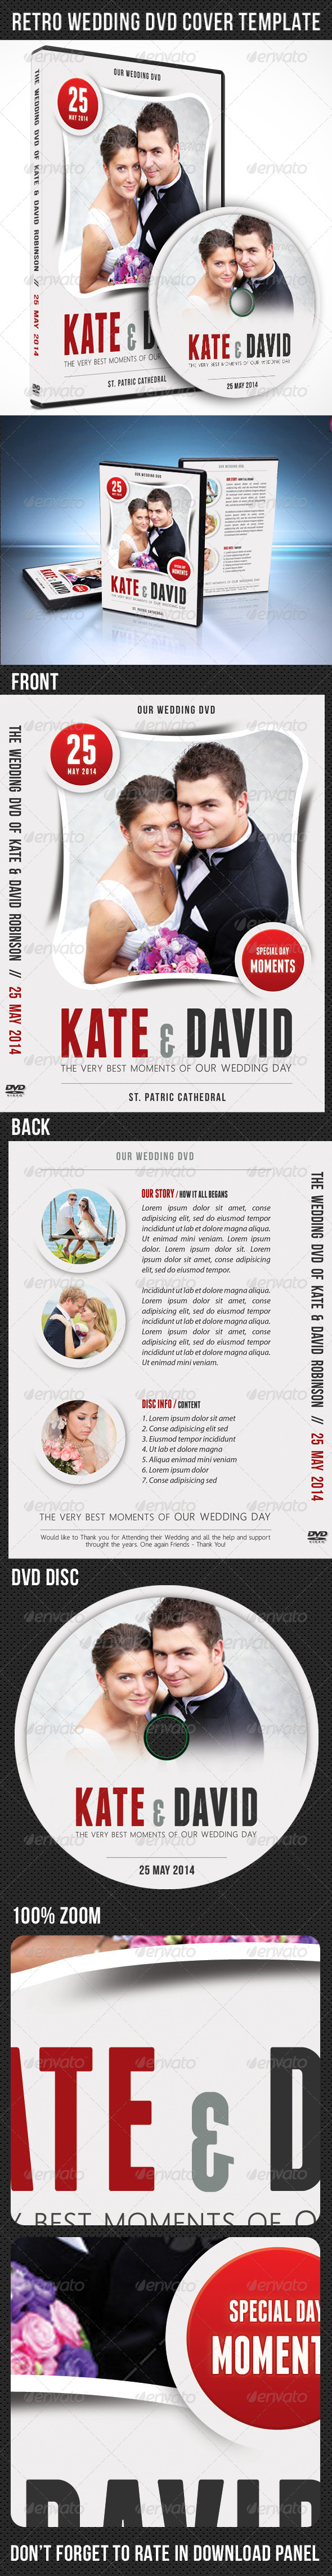 GraphicRiver Wedding DVD Cover Template 02 7551841